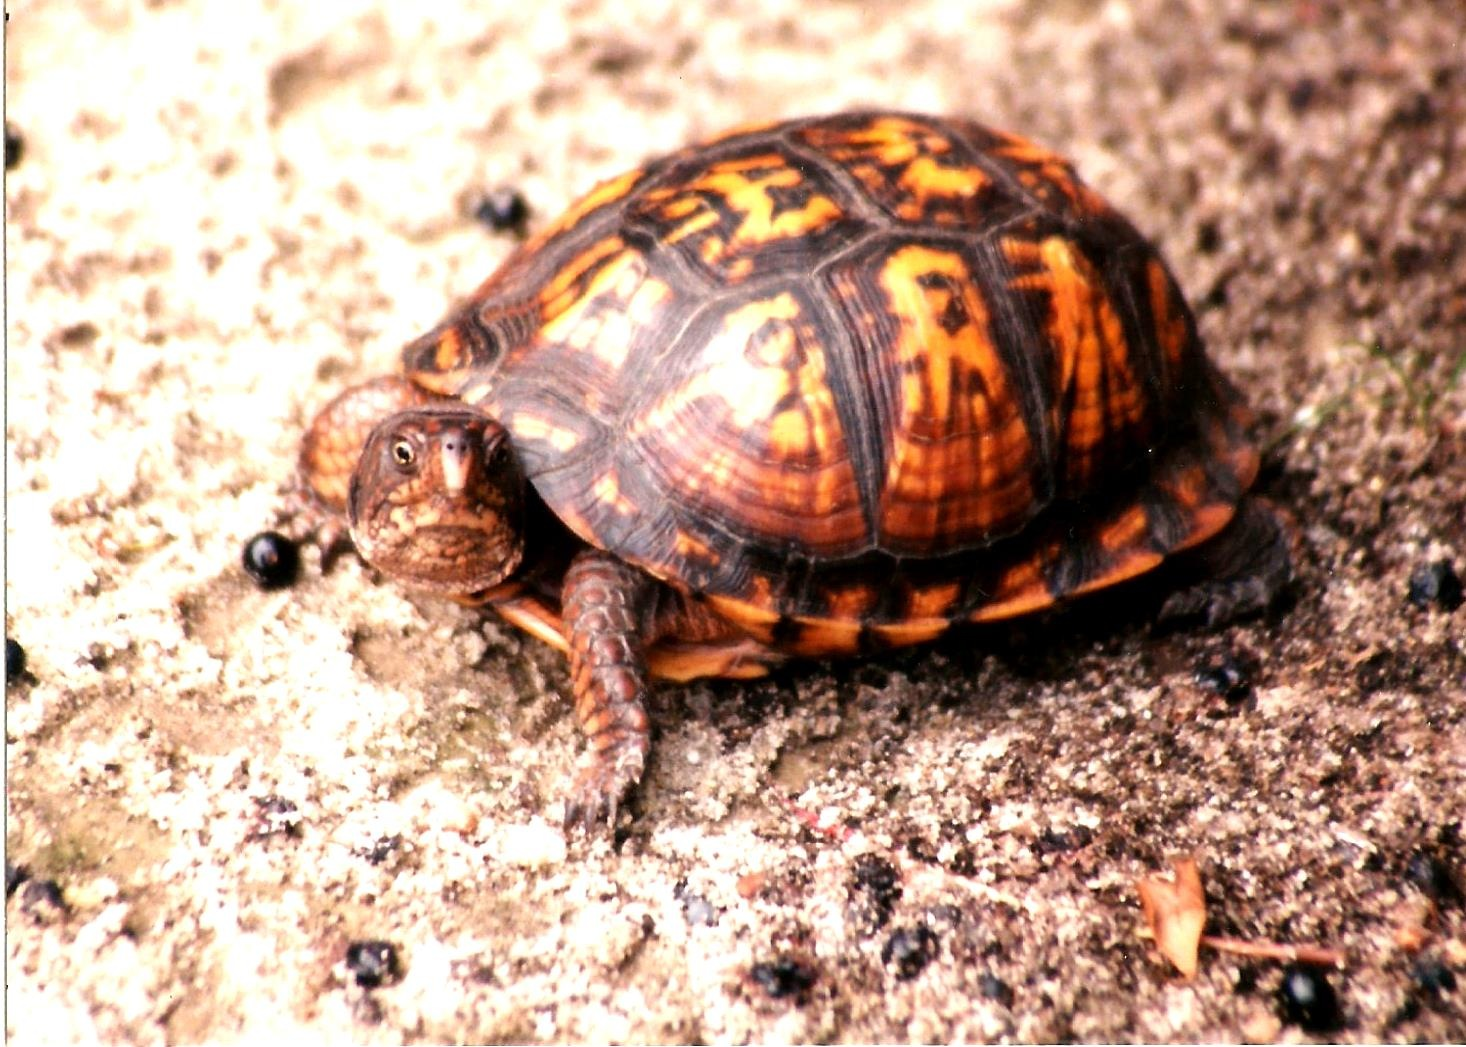 THE WILD BOX TURTLE by Hope Atwood Dayhoff